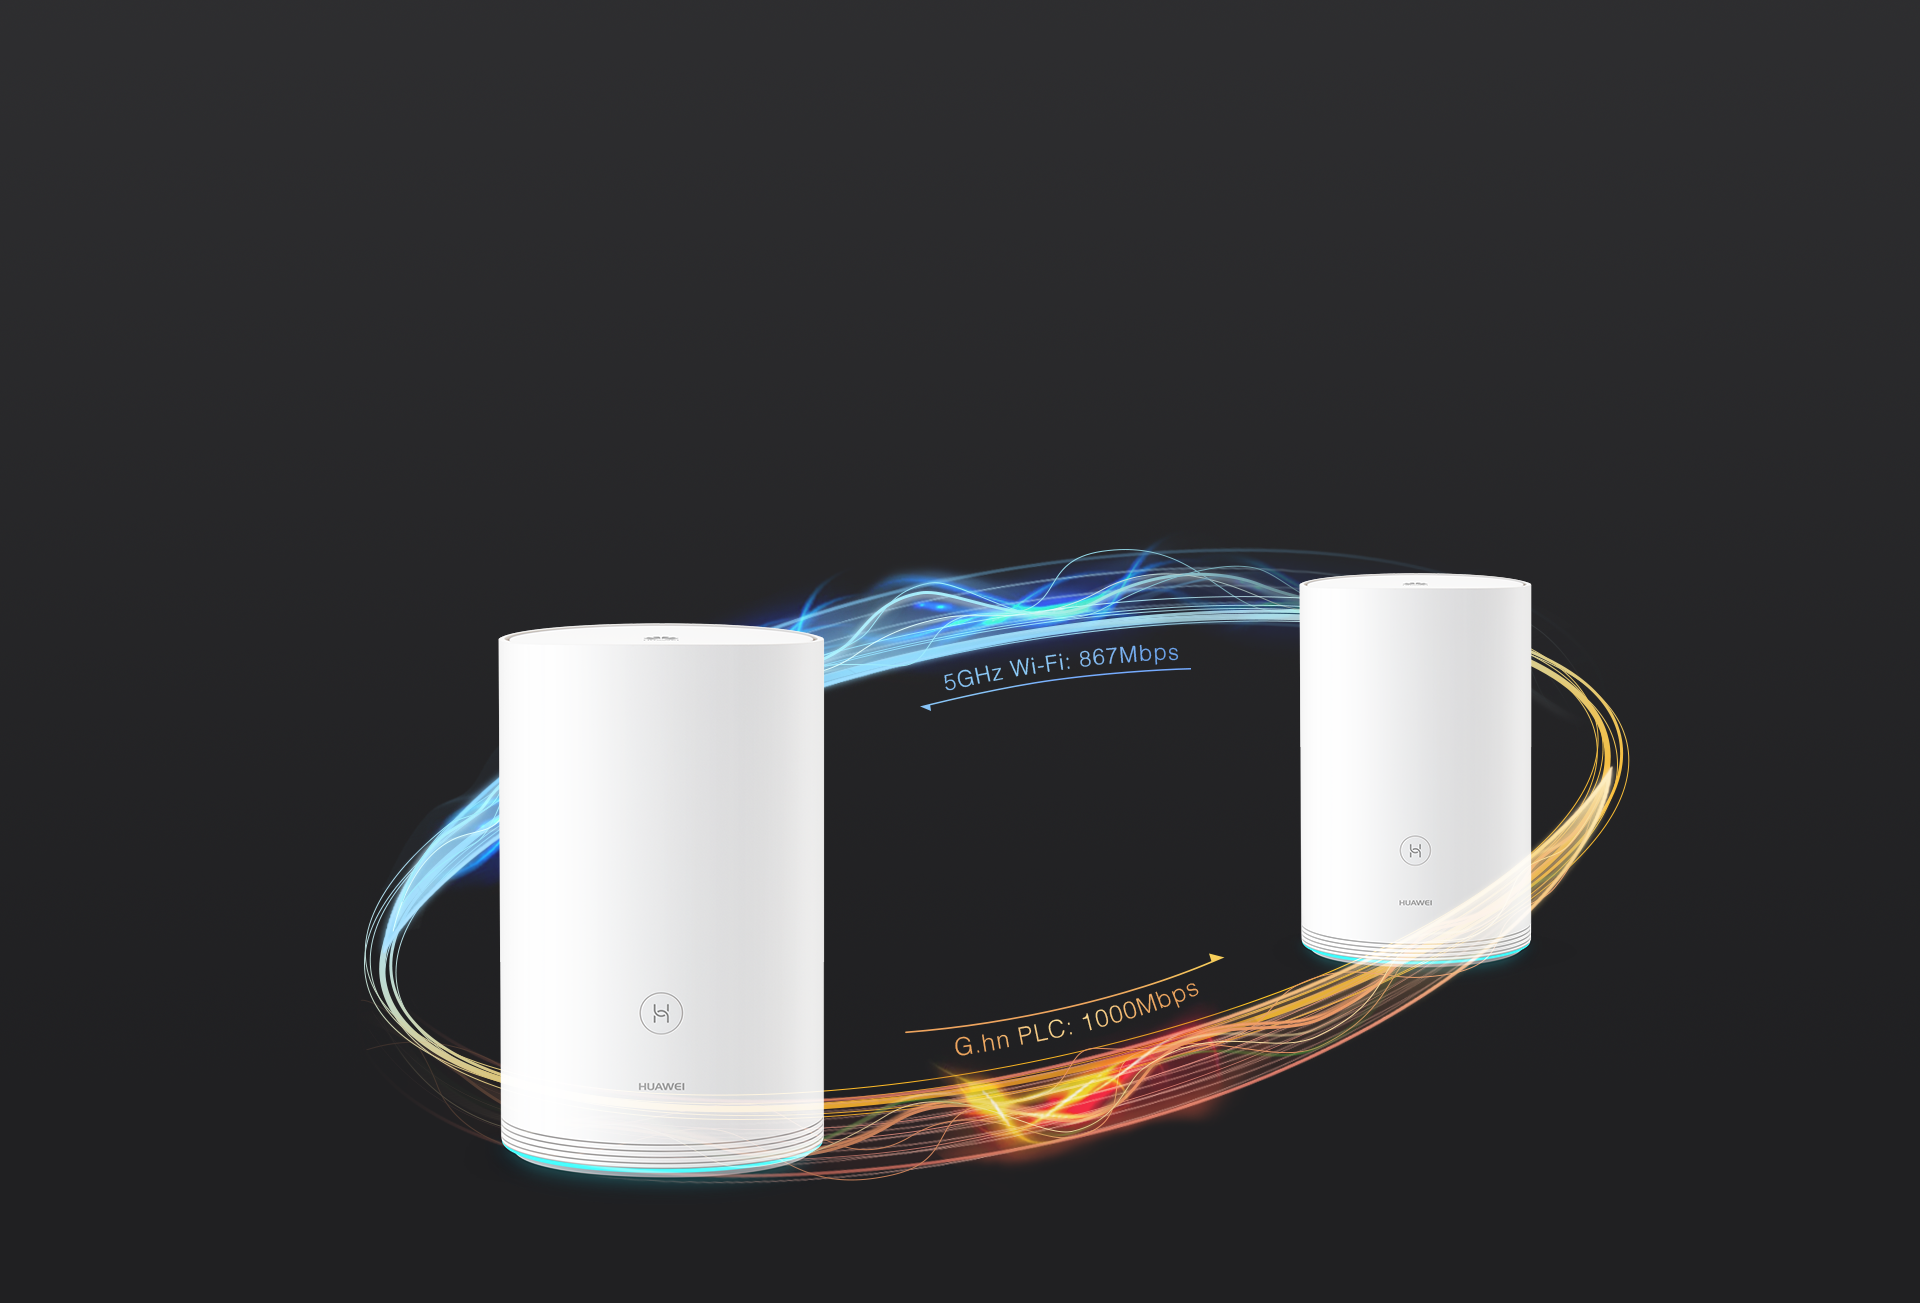 HUAWEI WiFi Q2, WiFi router replacement, whole home WiFi system